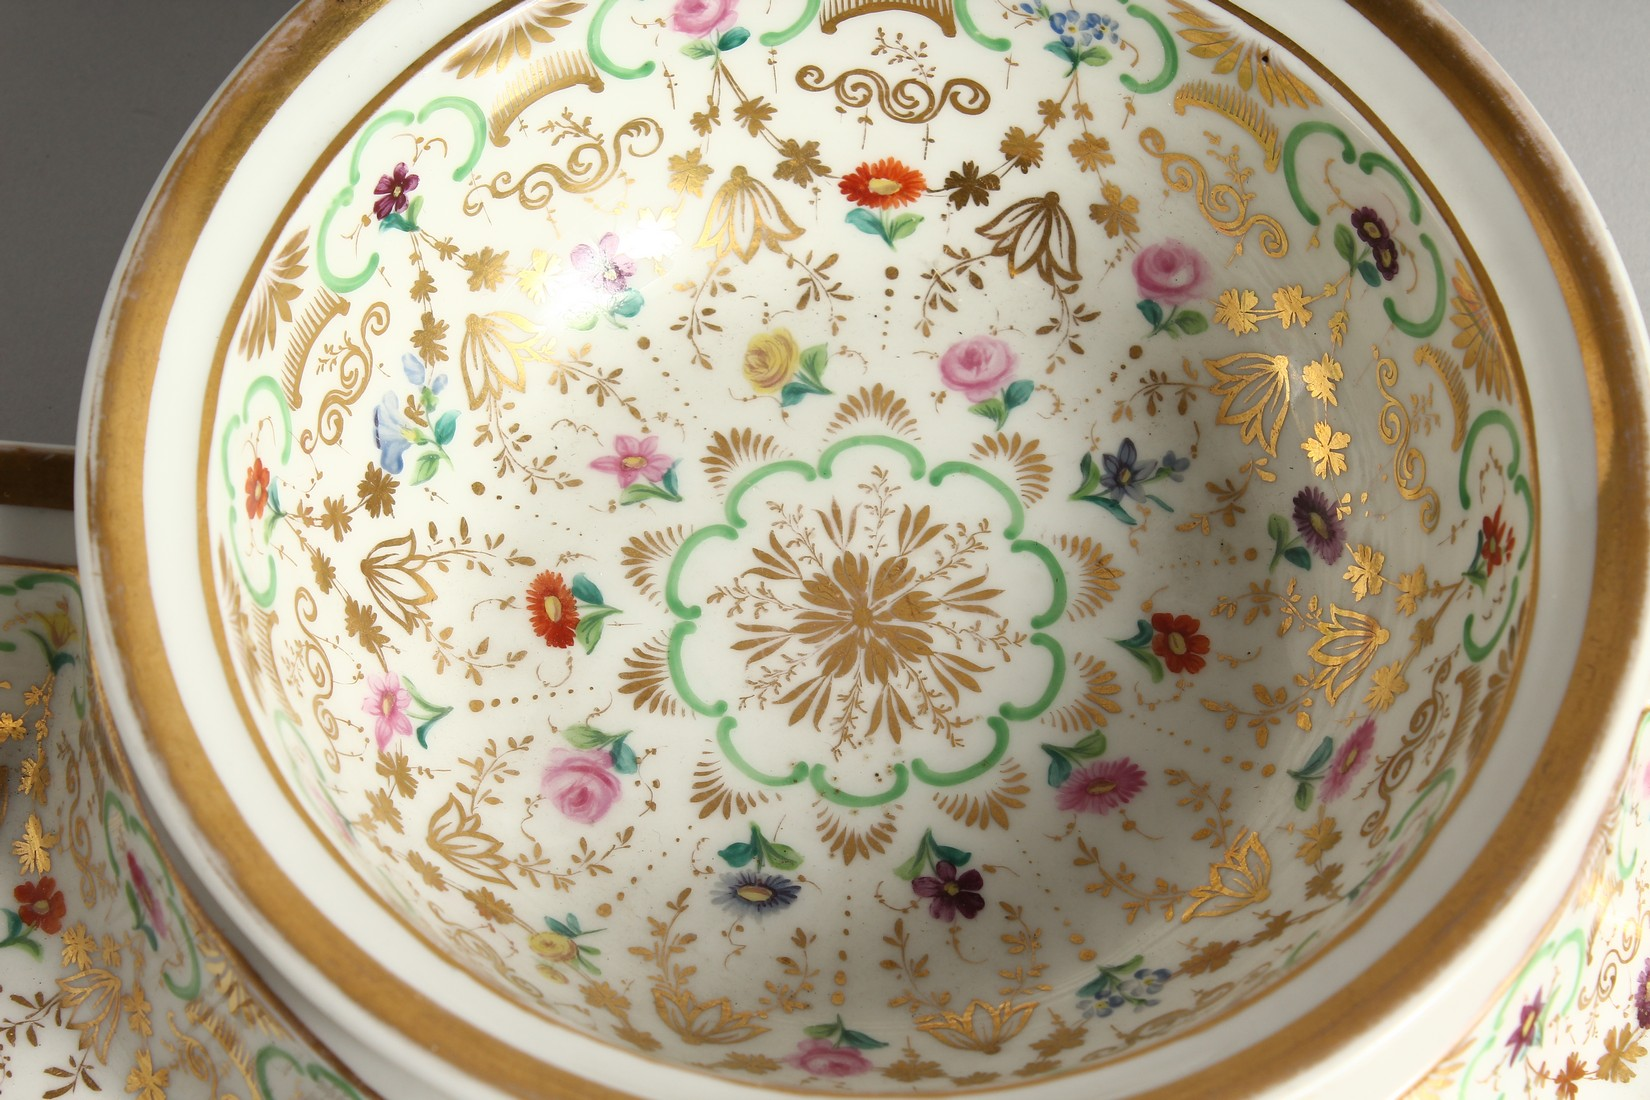 A K. P. M. PORCELAIN CIRCULAR BOWL with gilt decoration and painted with flowers. 7ins diameter - Image 4 of 9